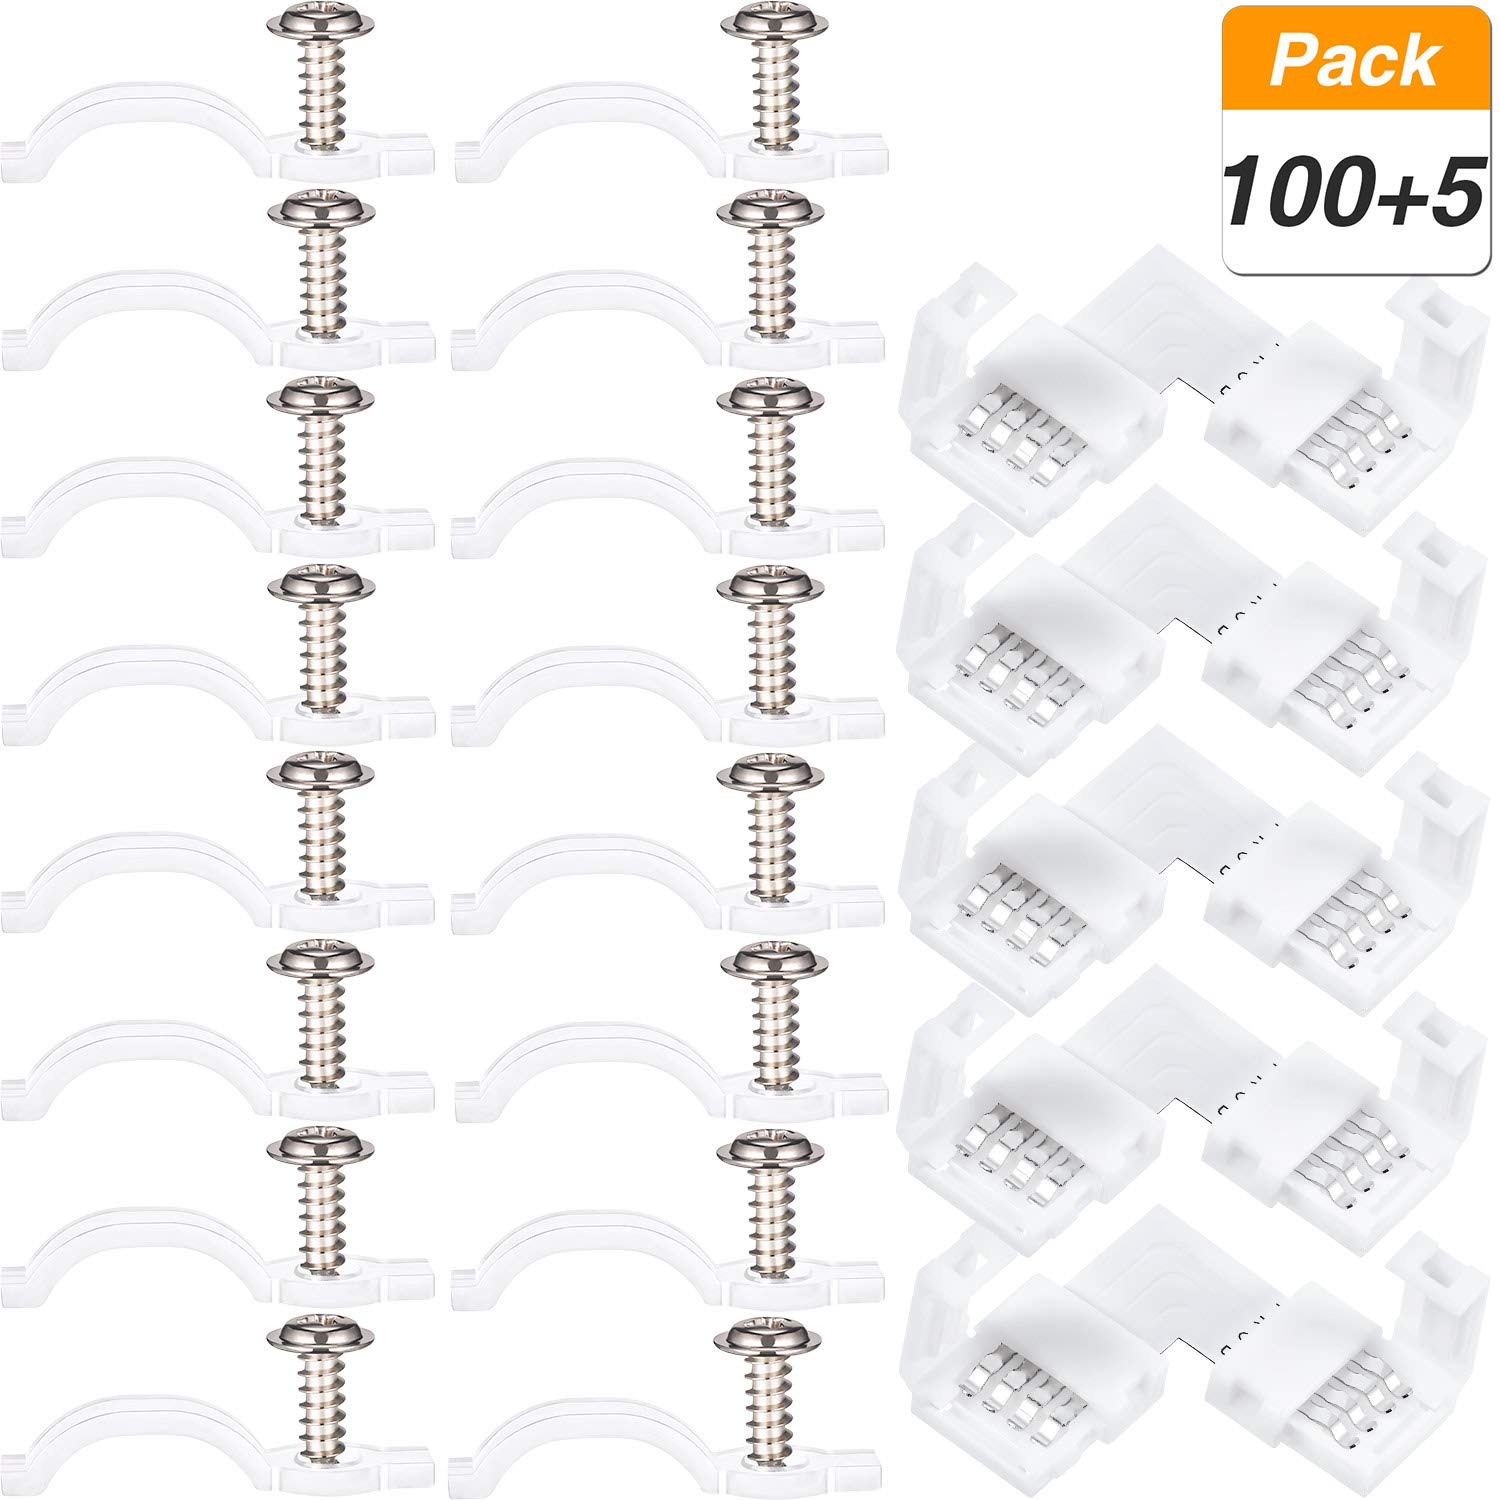 100 Pack Mounting Bracket Kit Strip Light Mounting Brackets, Fixing Clips, with 5 Pieces LED Strip Light Connector, L Shape 4 Pin Connector, 100 Screws Included Jovitec